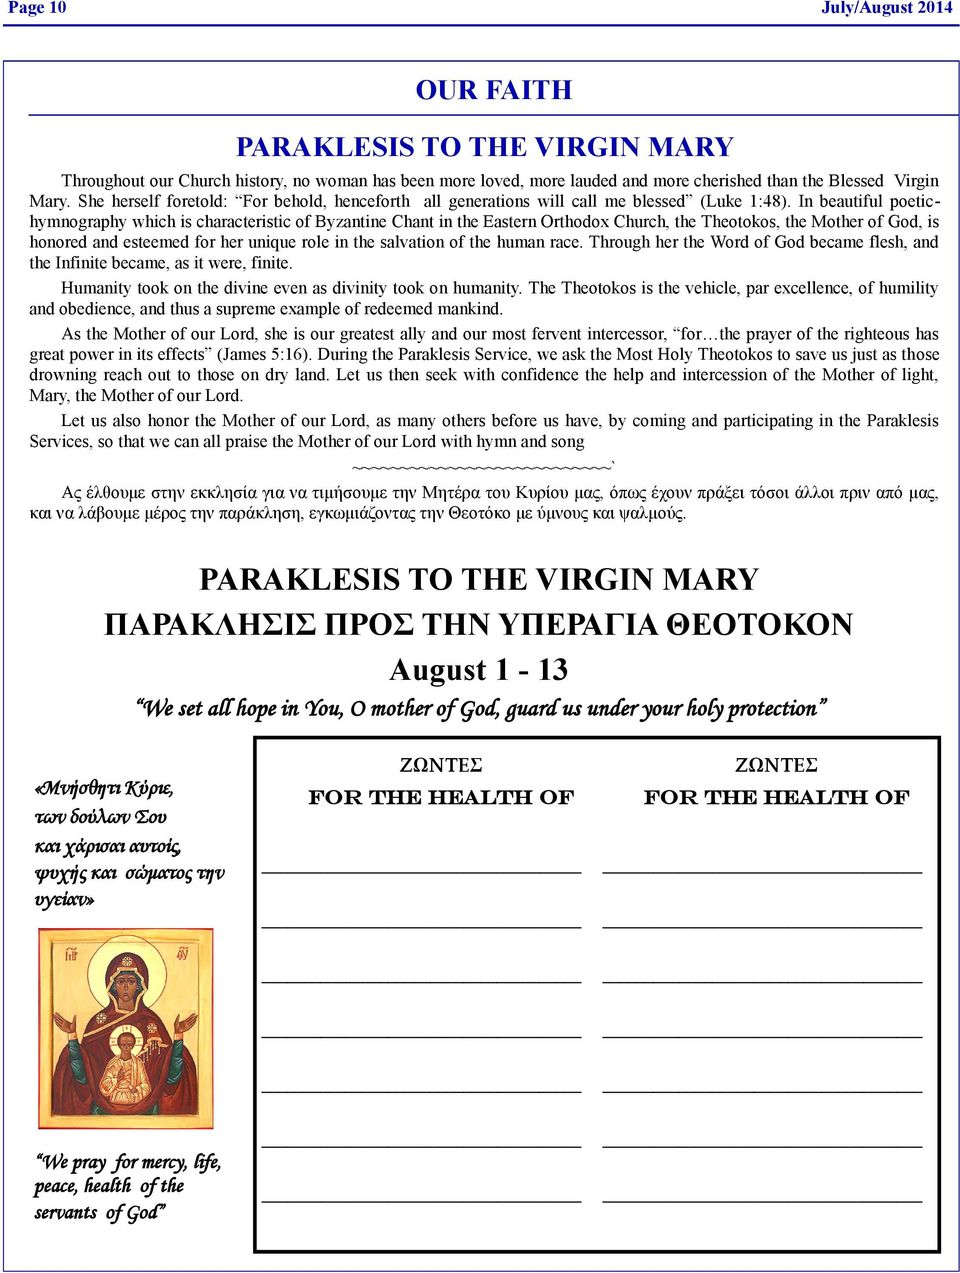 In beautiful poetichymnography which is characteristic of Byzantine Chant in the Eastern Orthodox Church, the Theotokos, the Mother of God, is honored and esteemed for her unique role in the